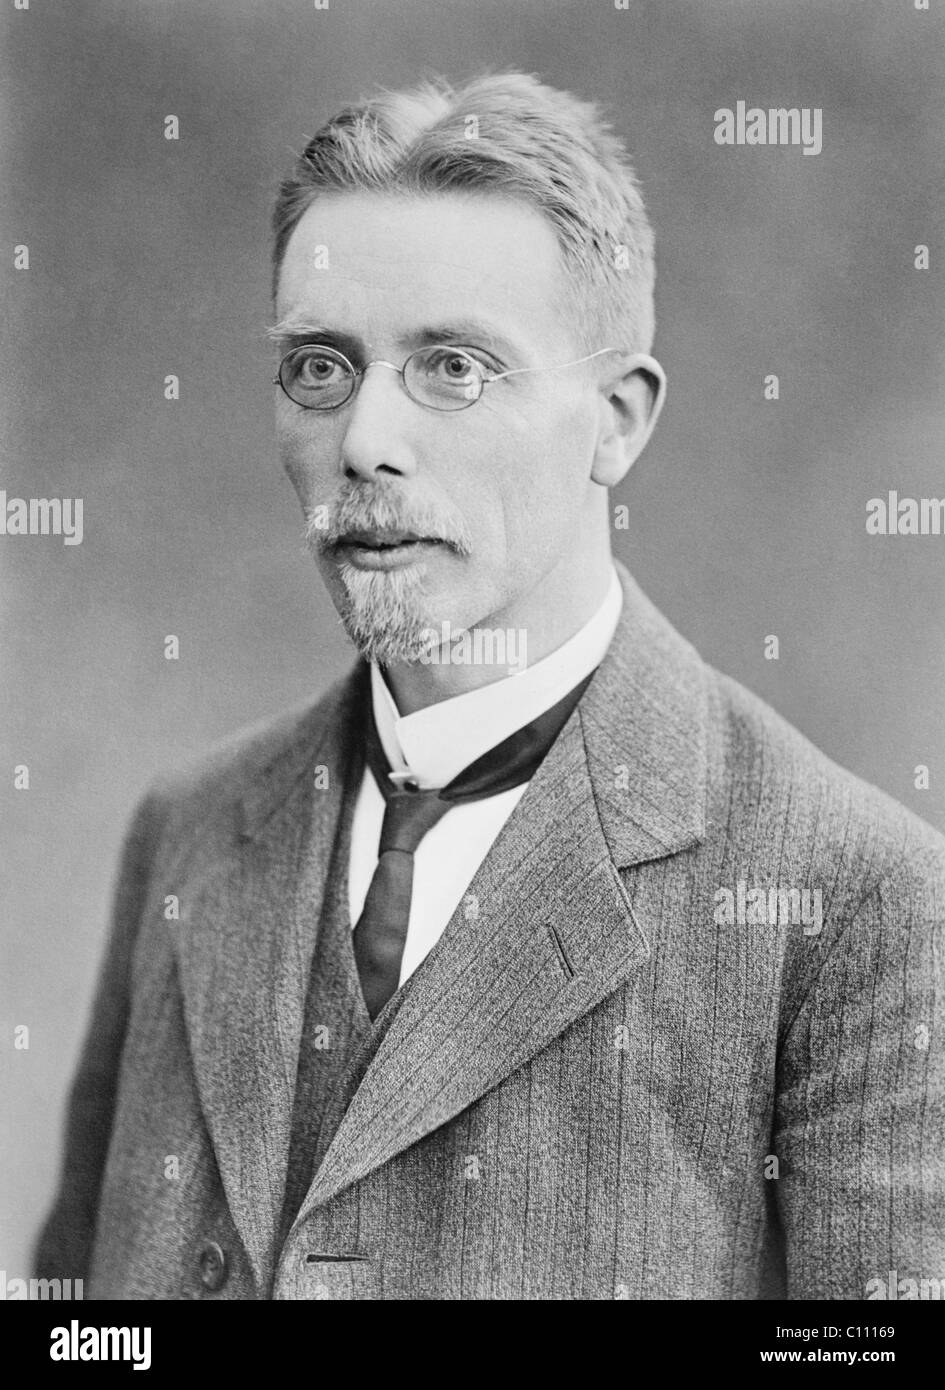 Danish physiologist August Krogh (1874 - 1949) - winner of the Nobel Prize in Physiology or Medicine in 1920. - Stock Image